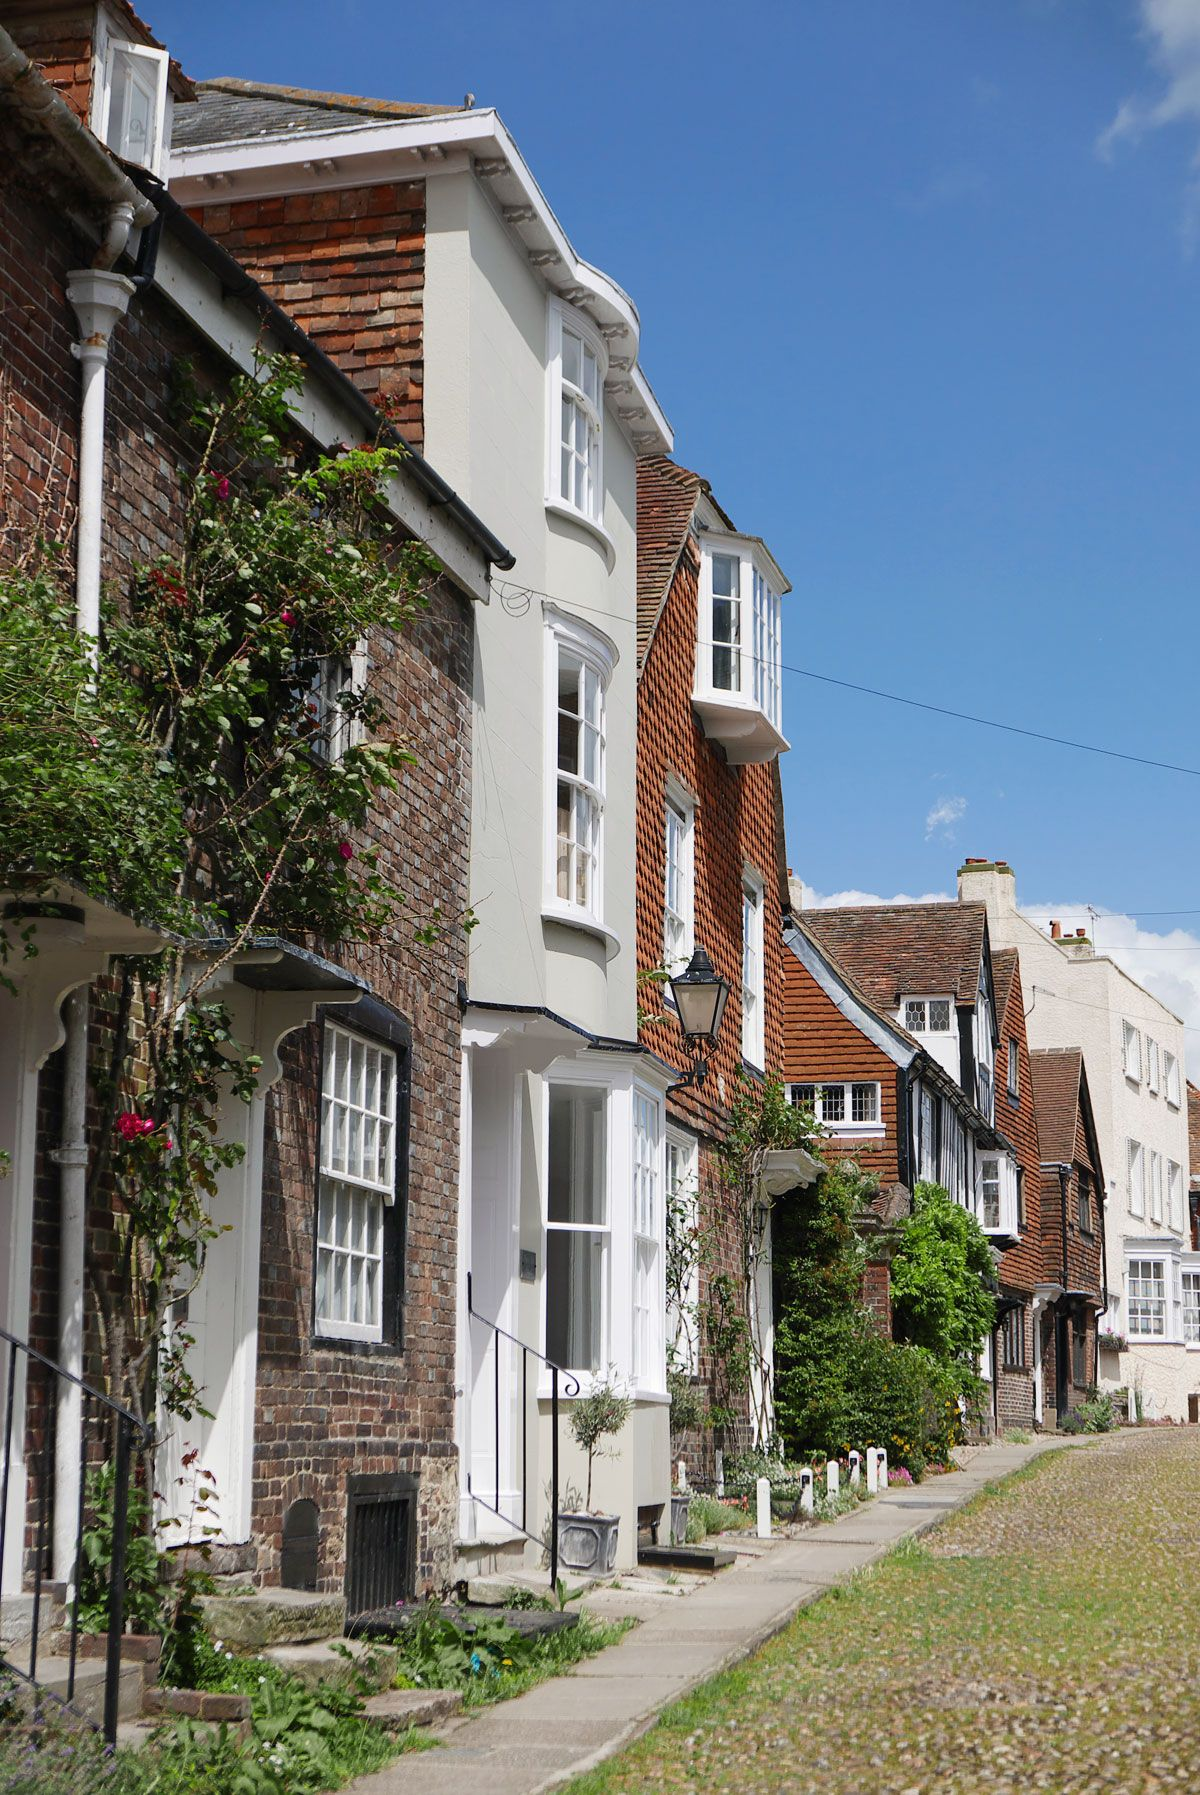 How To Spend A Day In Rye Sussex East Sussex Townhouse Exterior Cornwall England